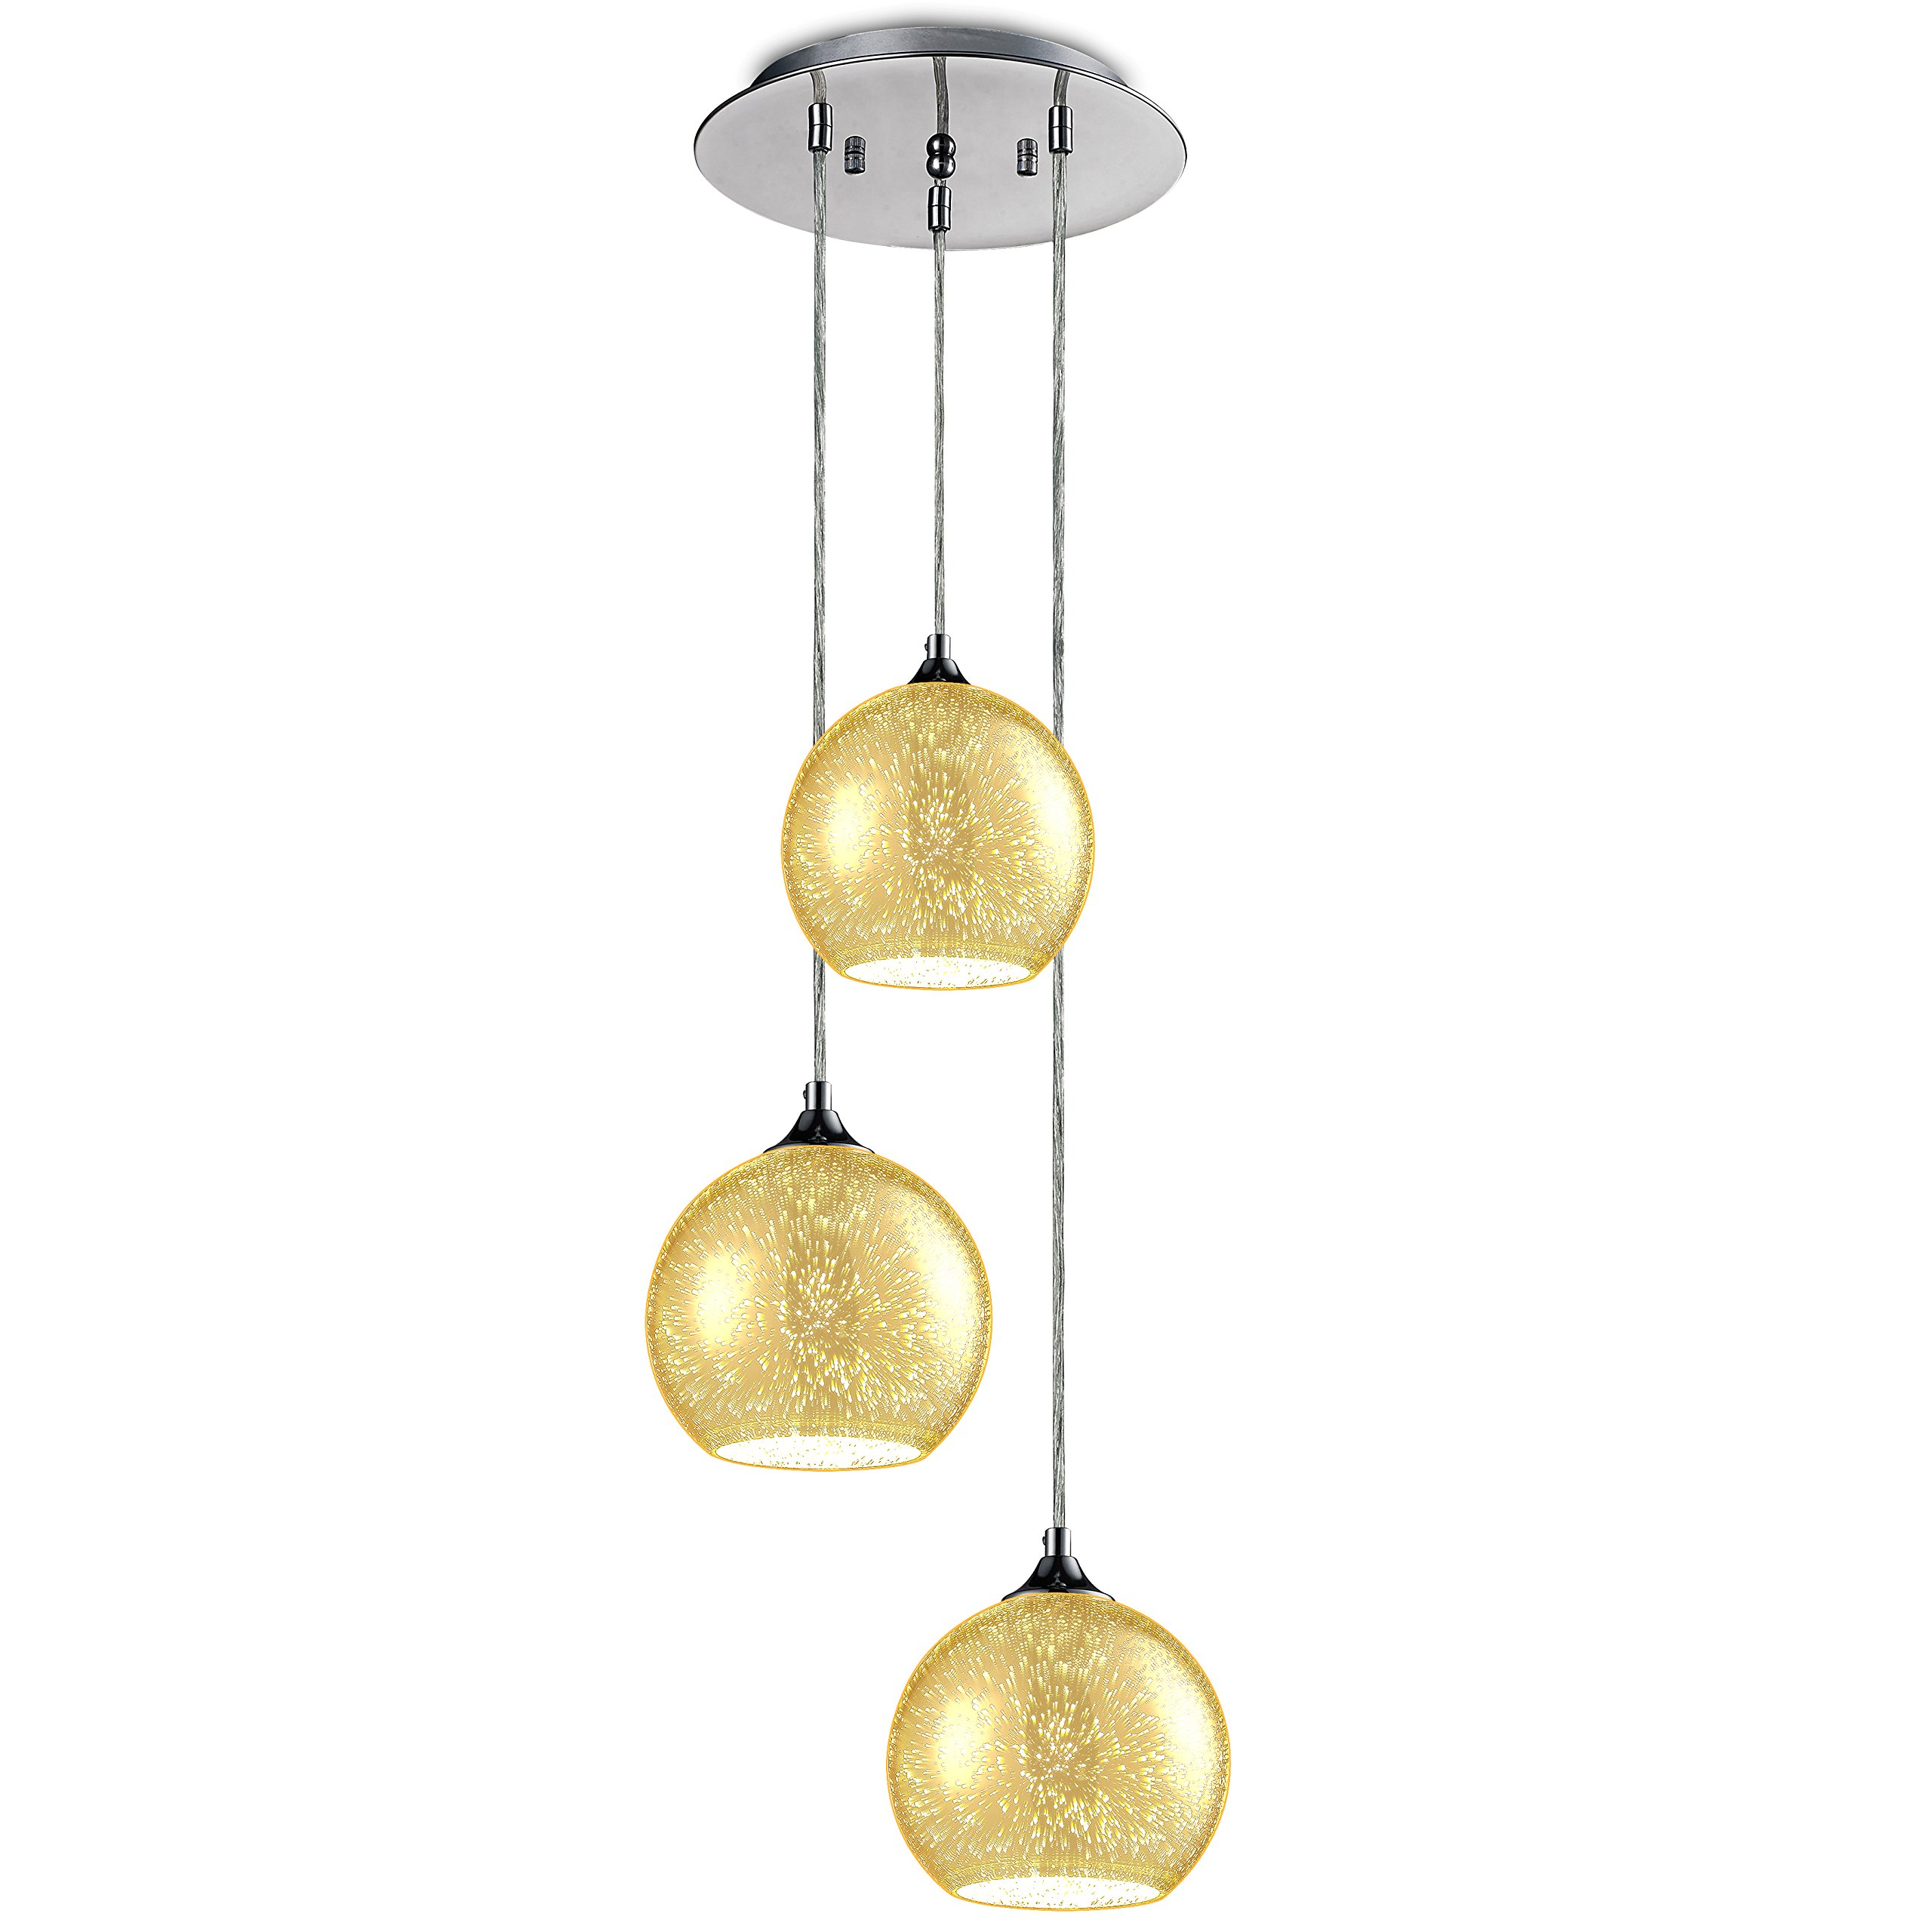 "SereneLife Home Lighting Fixture - Triple Pendant Hanging Lamp Ceiling Light with 3 7.1"" Circular Sphere Shaped Dome Globes, Sculpted Glass Accent, Adjustable Length and Screw-in Bulb Socket (SLLMP34)"